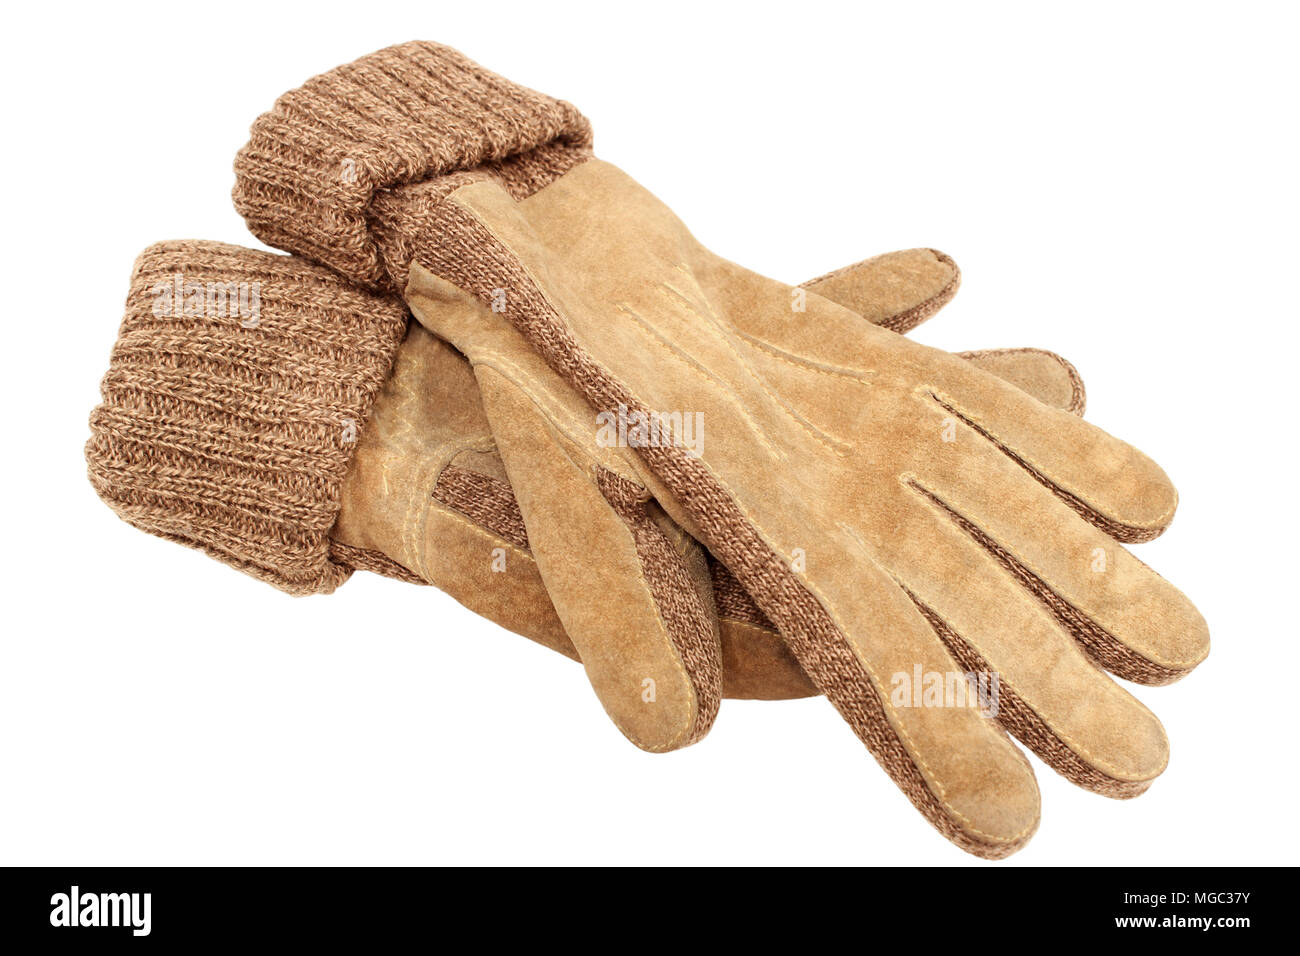 Suede gloves with knitted wool cuffs isolated on white background. - Stock Image